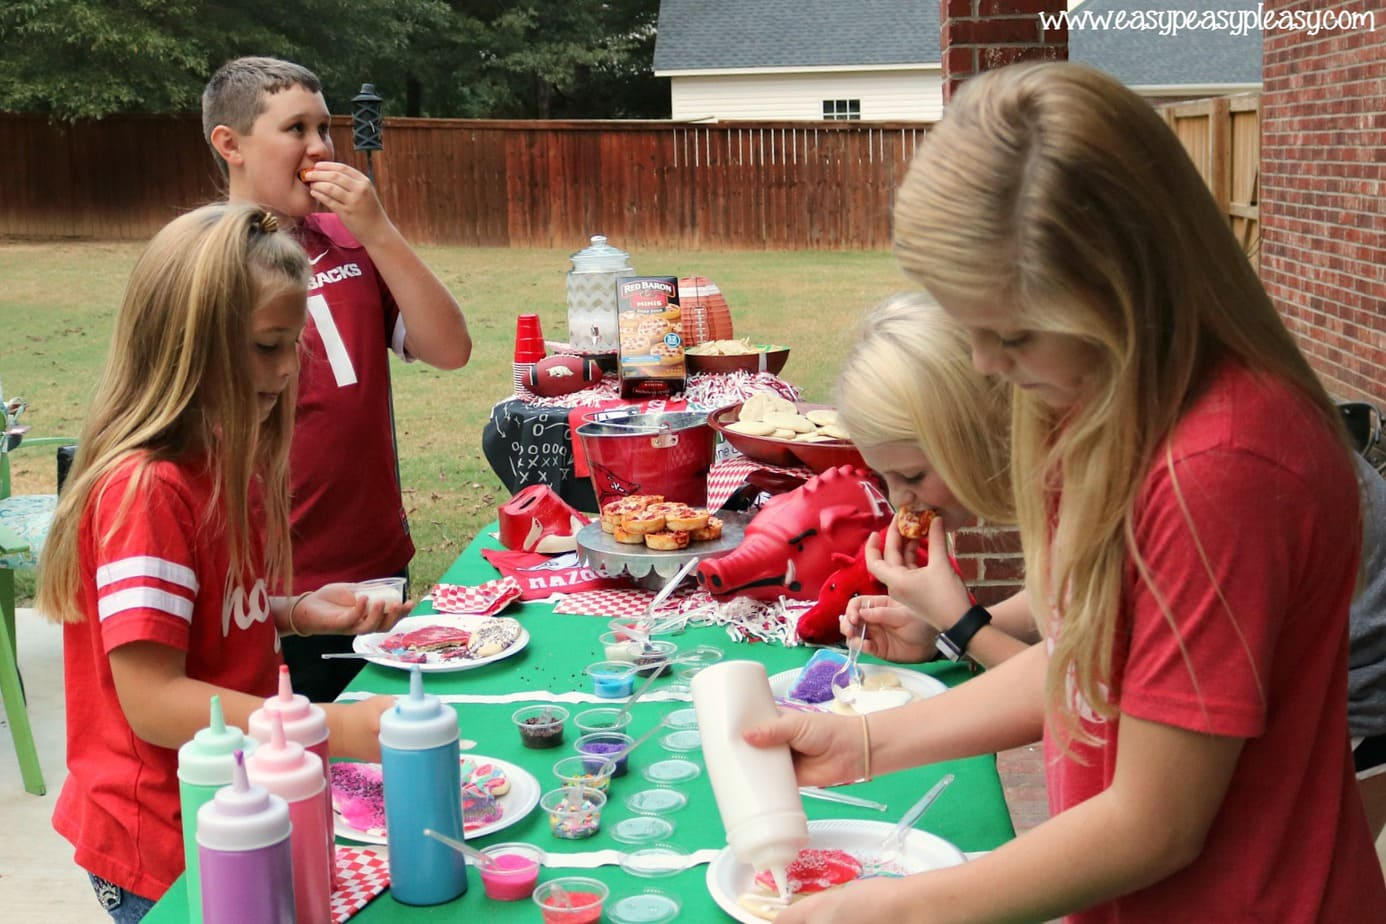 Pizza and cookie decorating for the win with kids on game day!